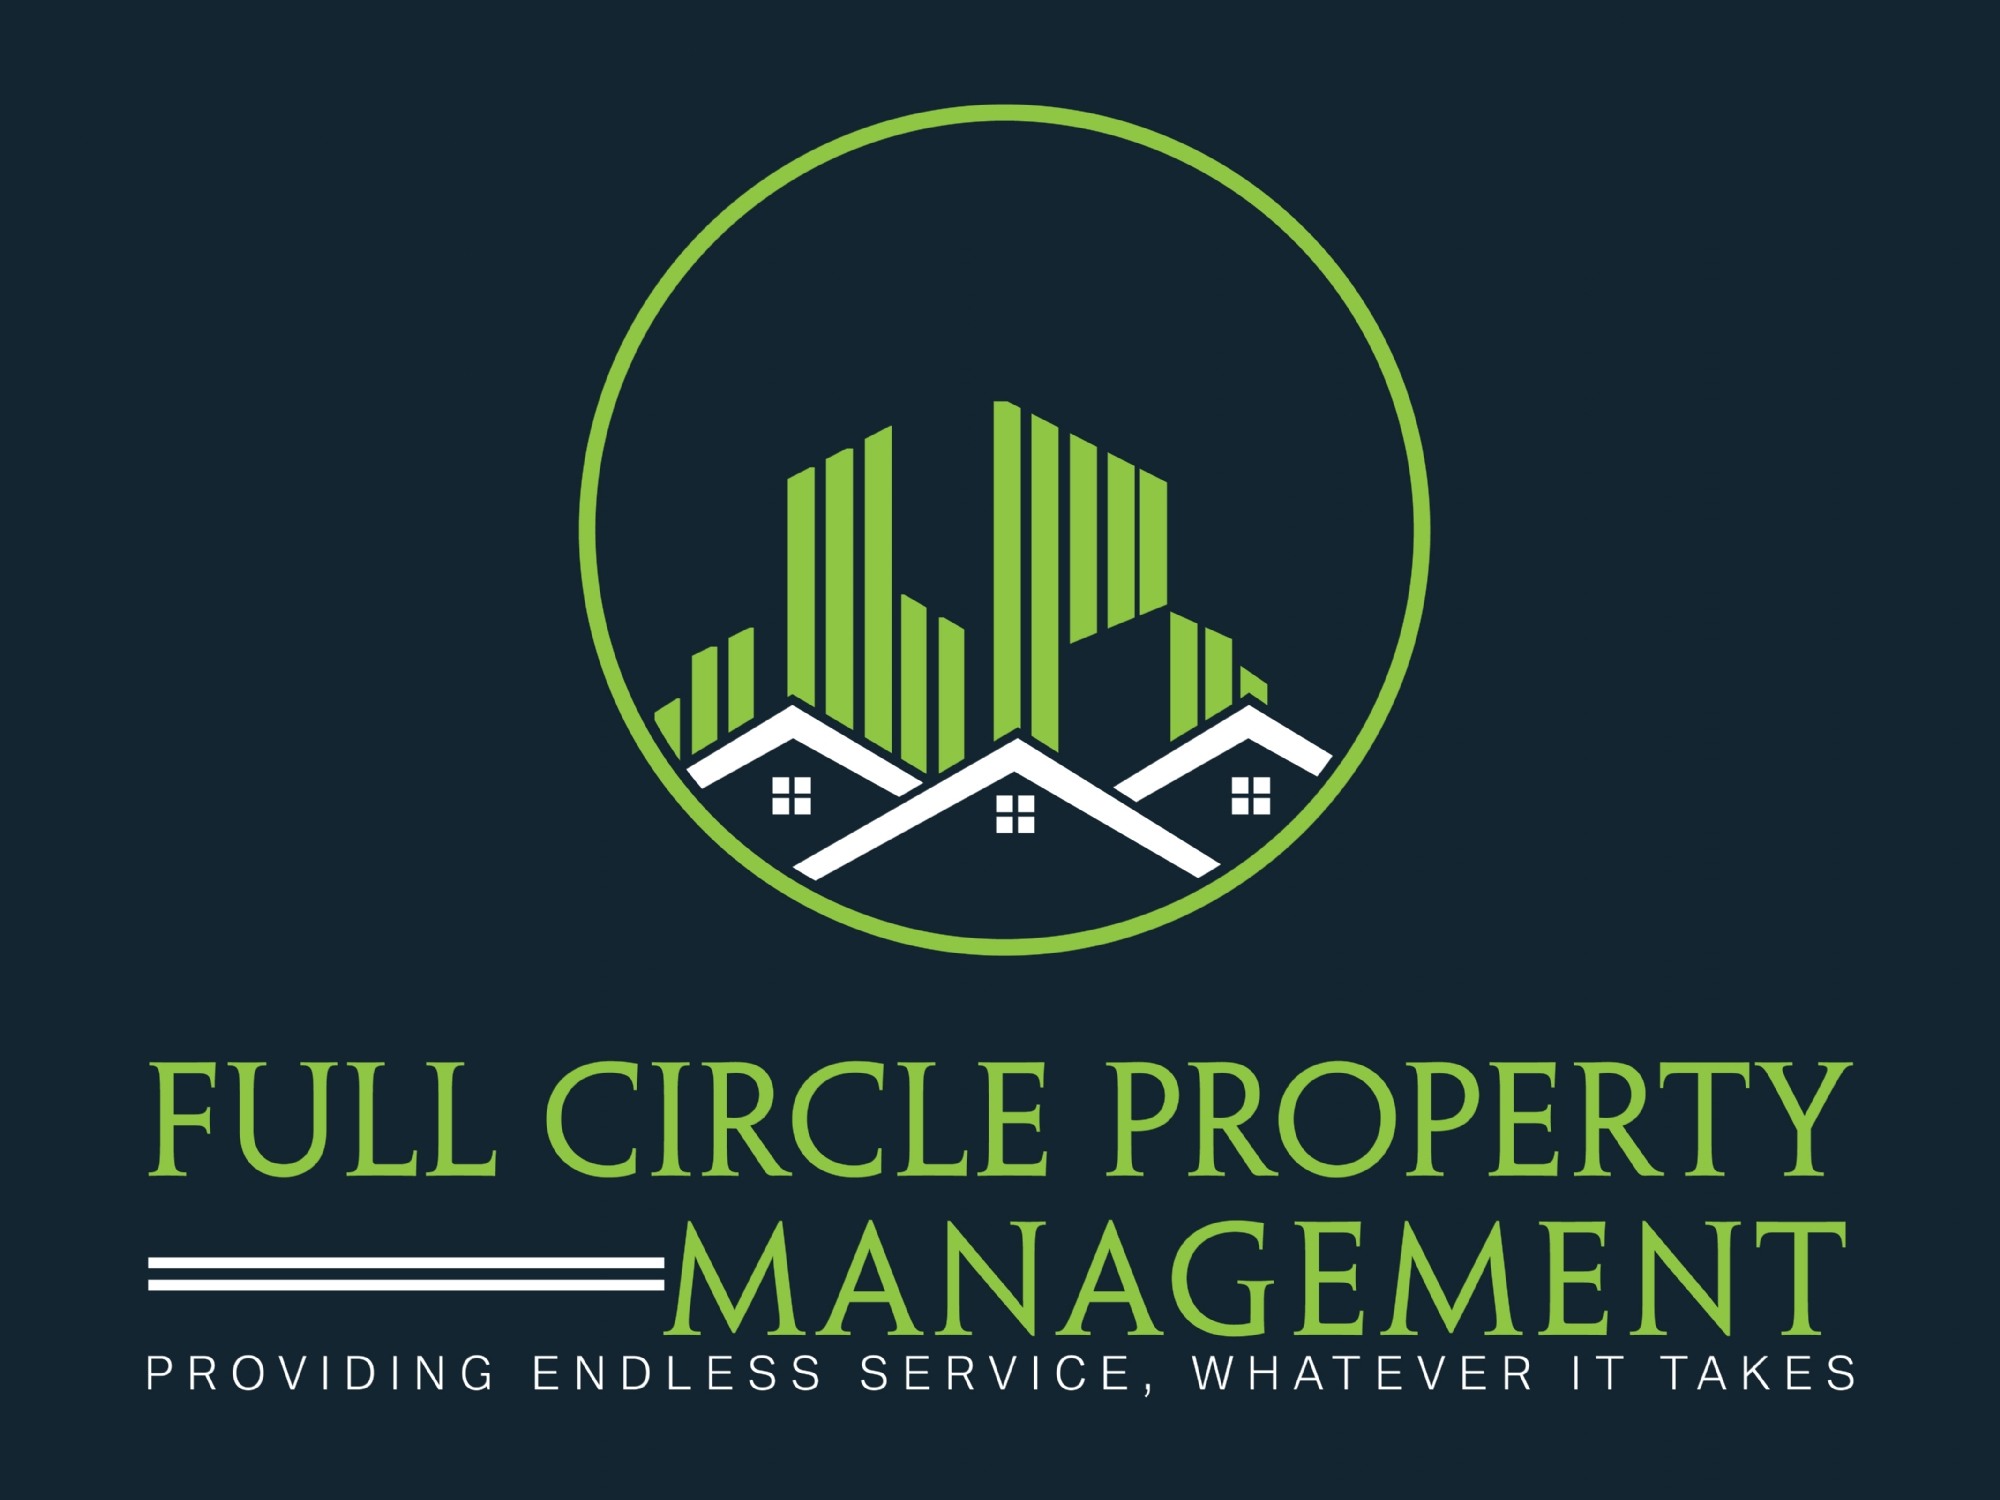 Full Circle Property Management